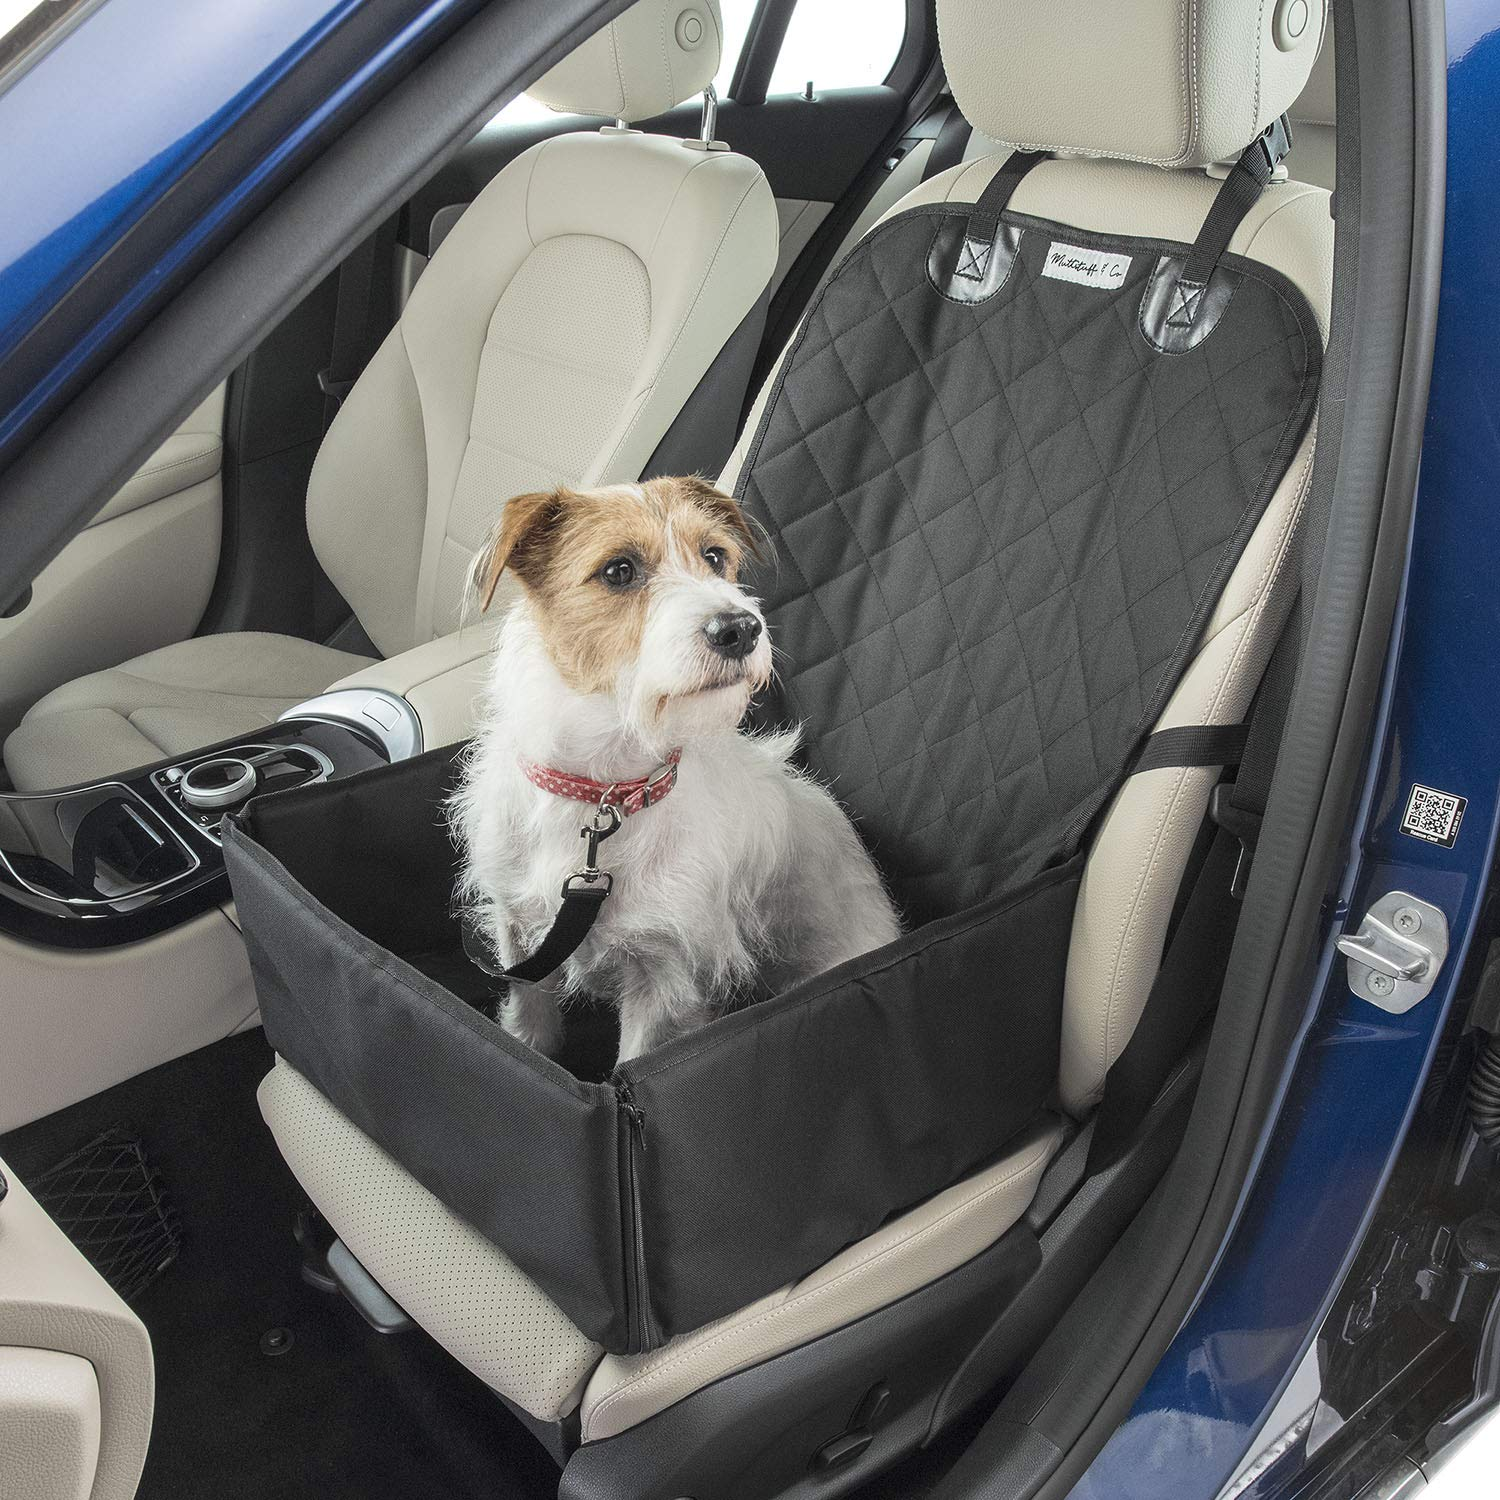 Dog Car Seat Cover with FREE Pet Seat Belt MuttStuff & Co Waterproof Covers  (2-in-1) Fold Down Flaps for Full Front Coverage or Small Basket Hammock